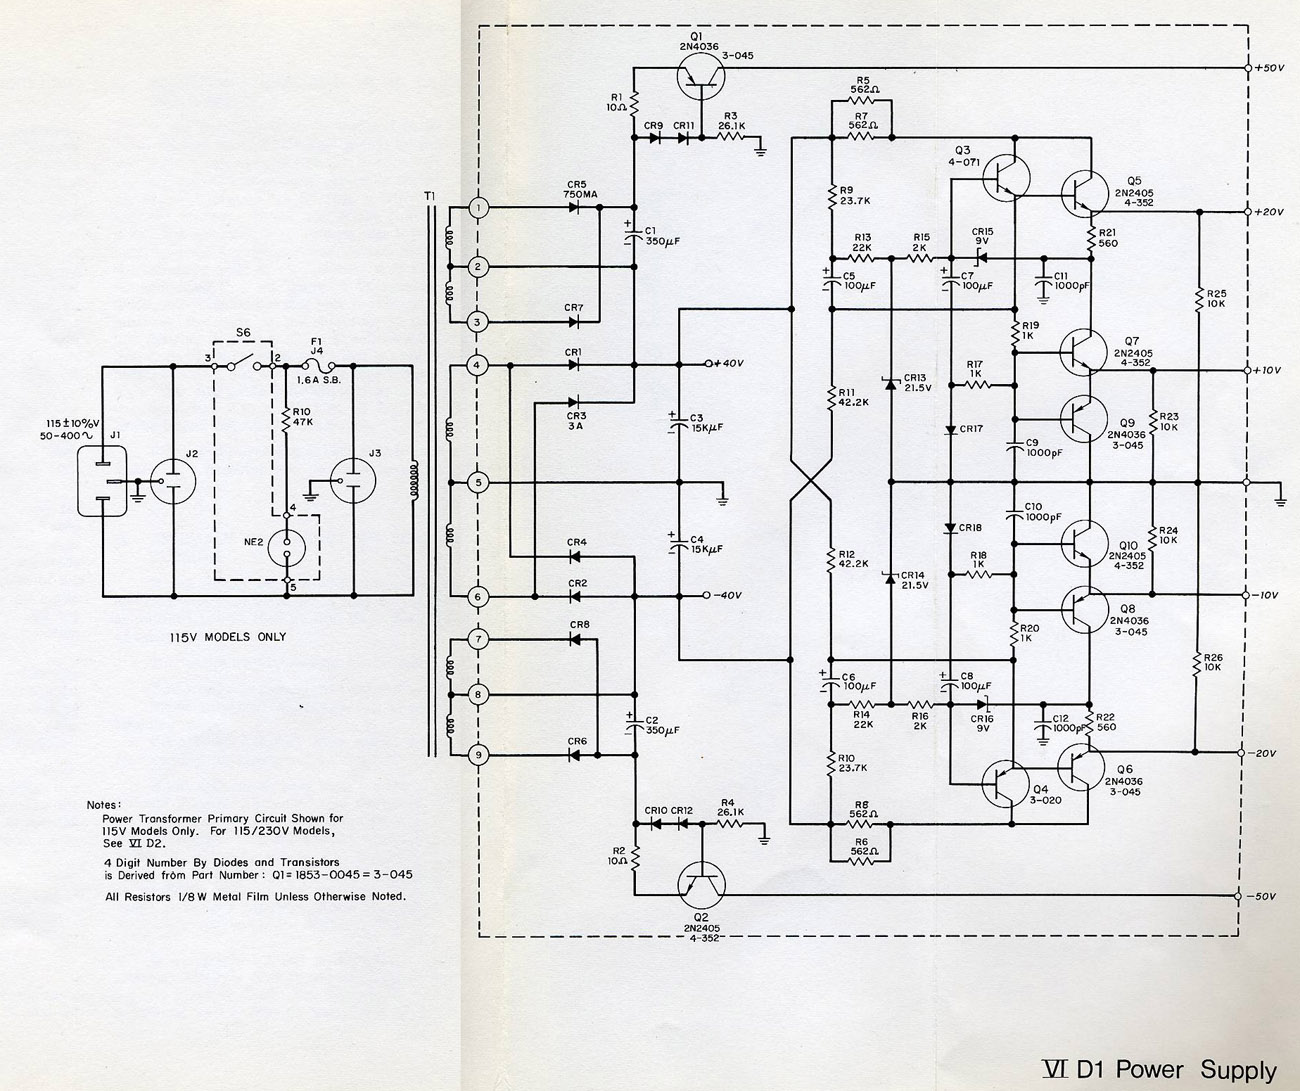 Hewlett Packard Wiring Diagram : 30 Wiring Diagram Images